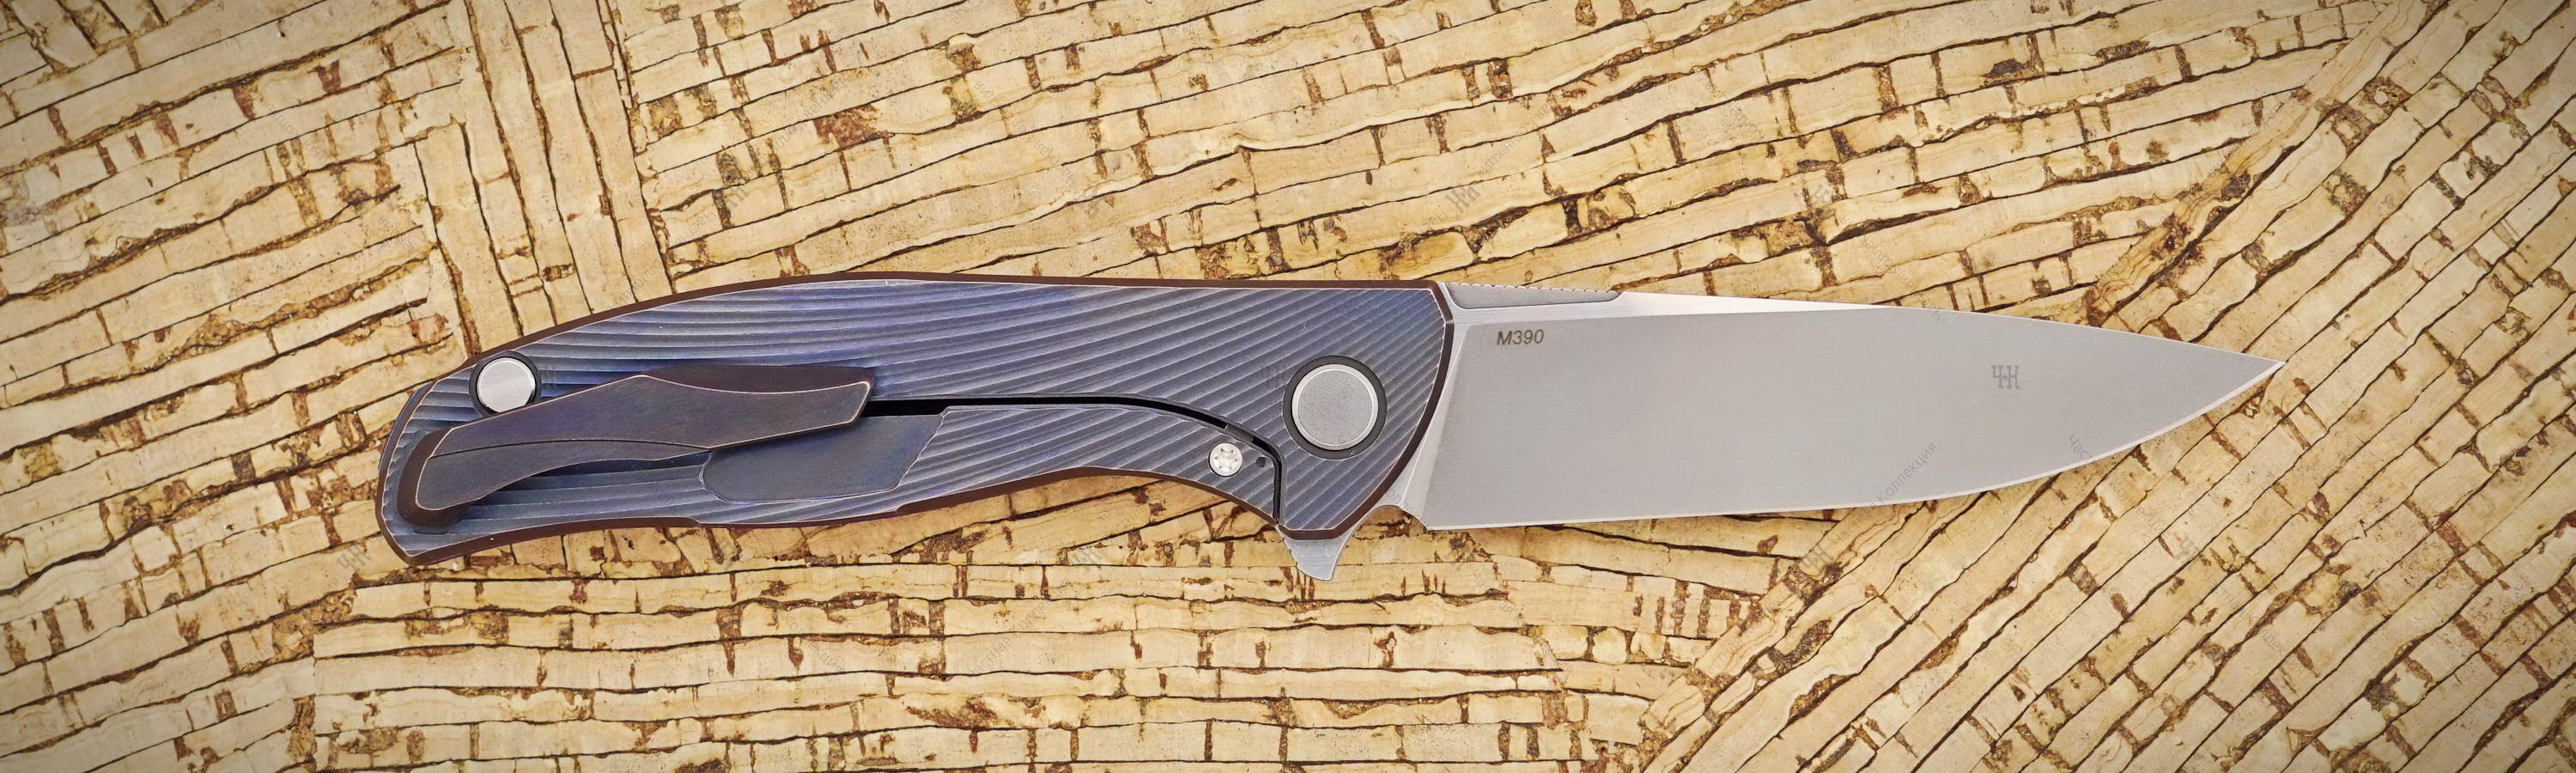 SBW Knife M390